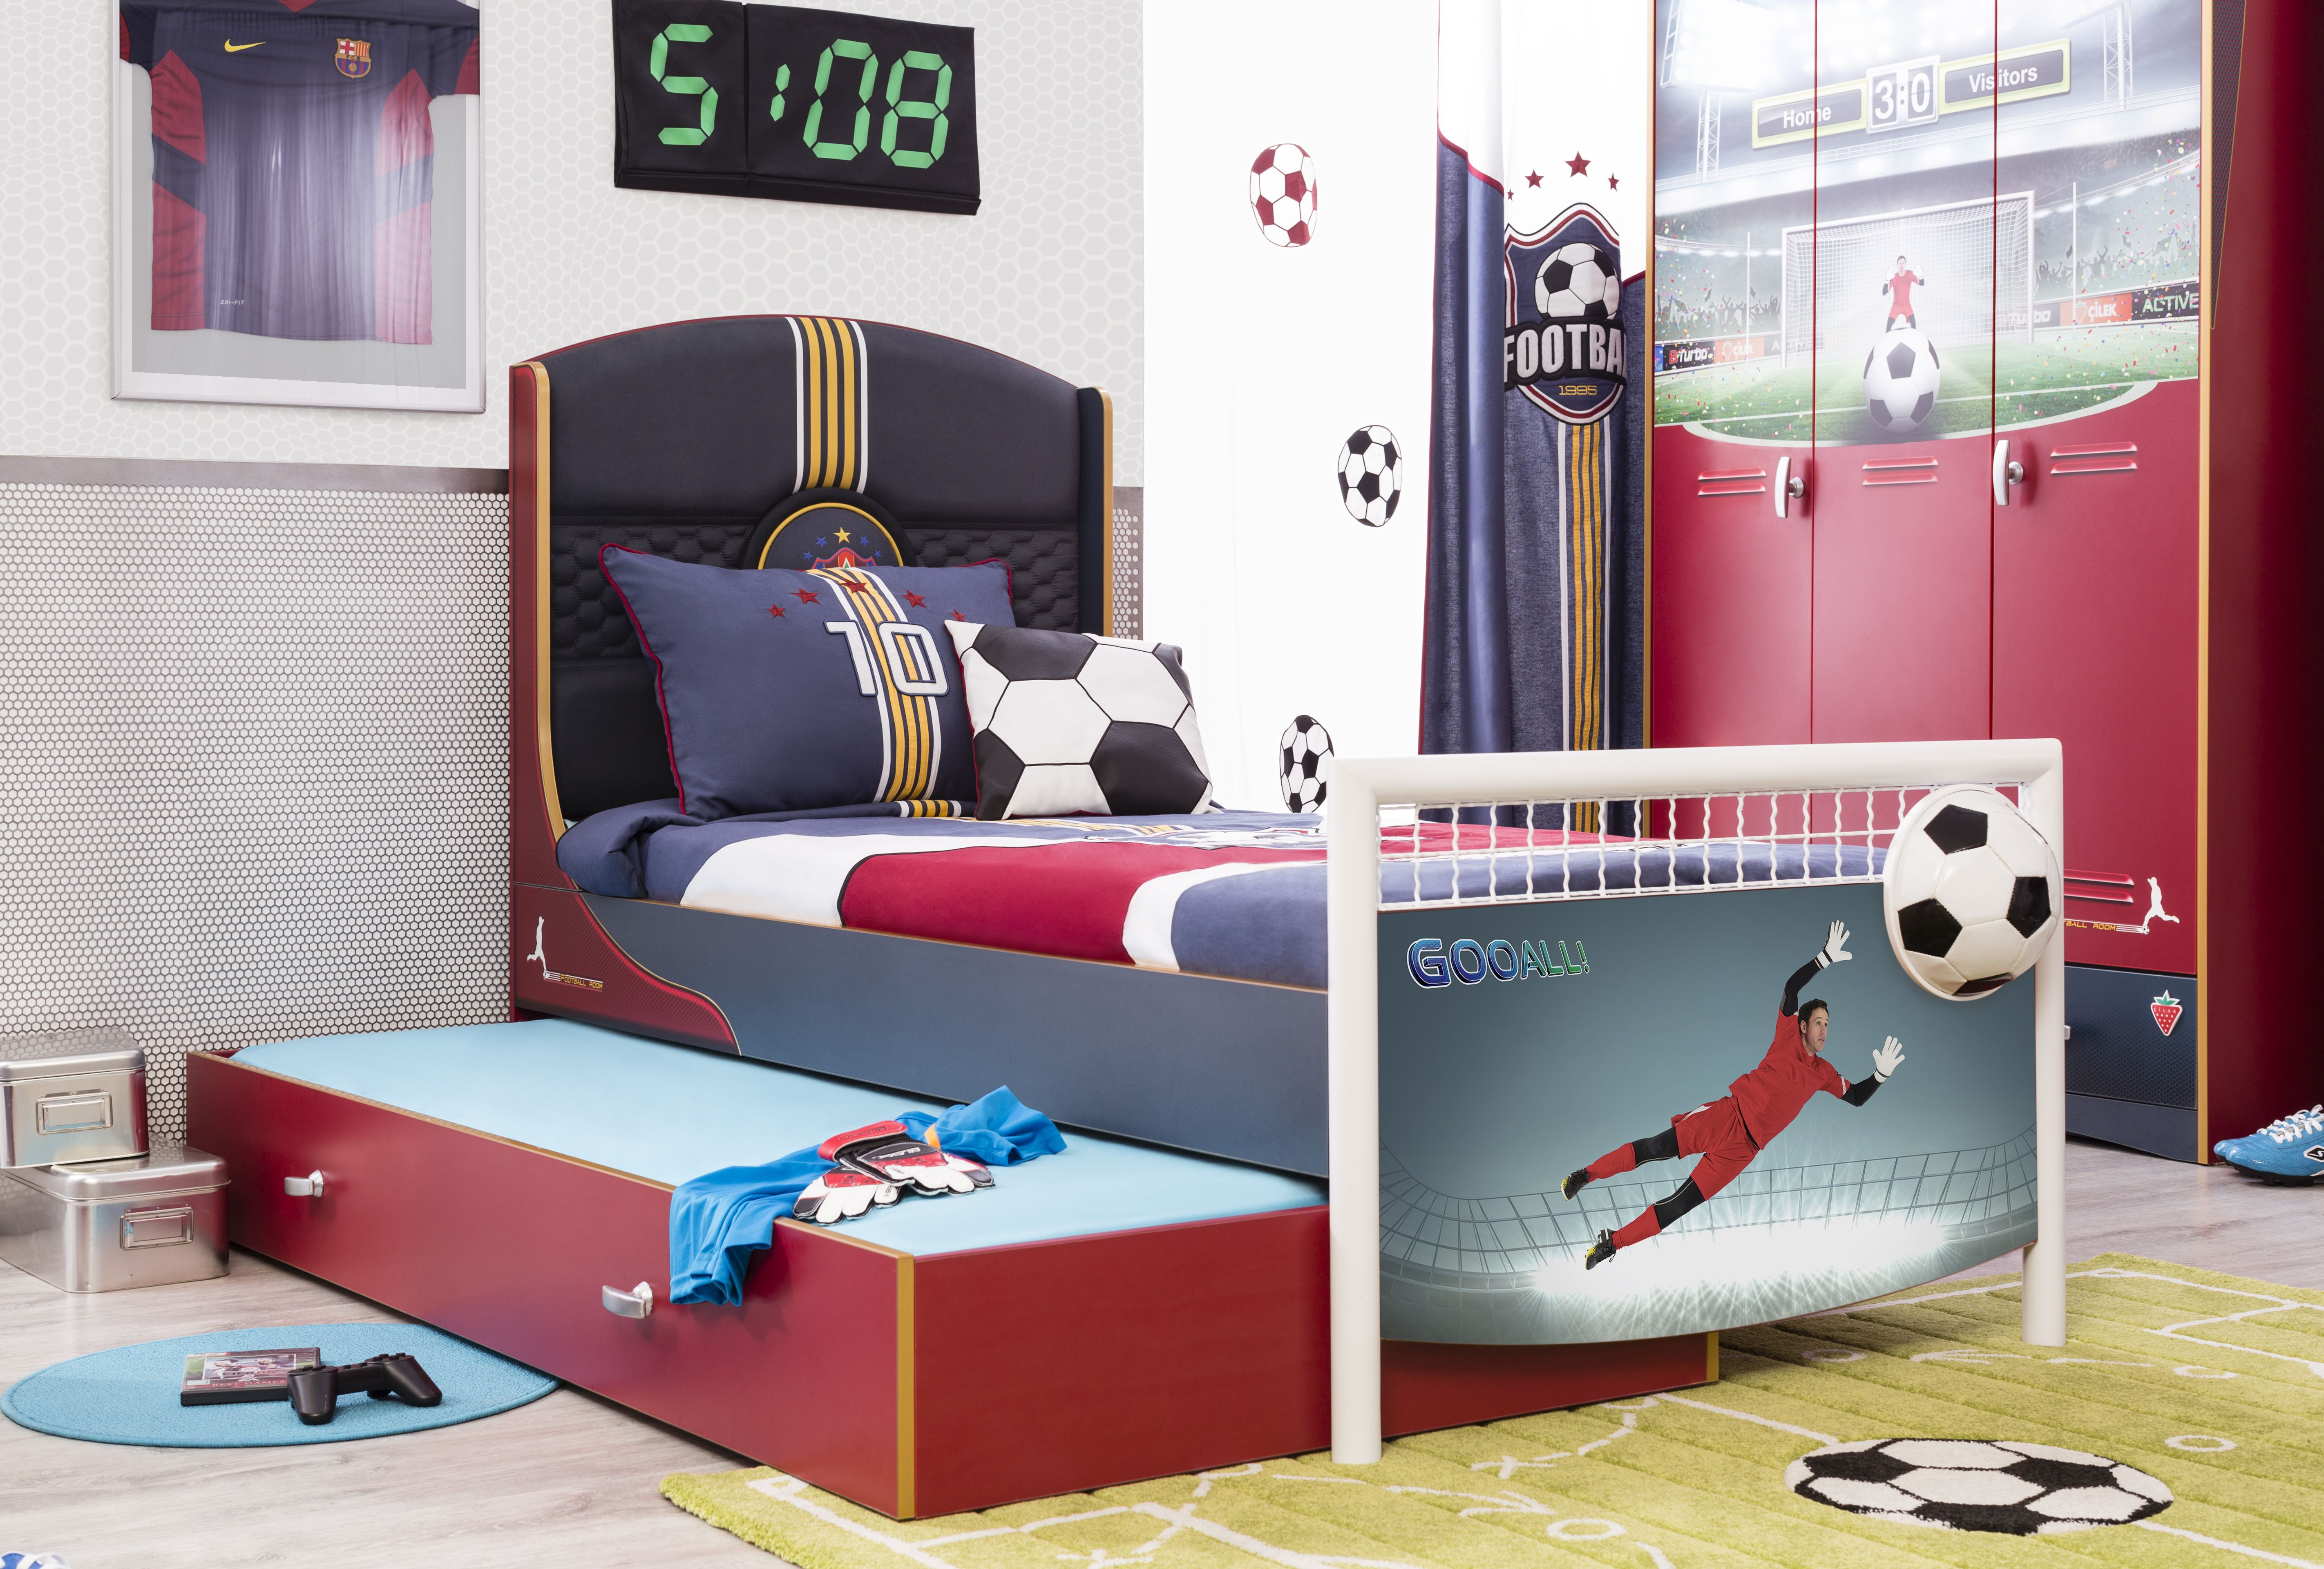 Childrens Beds With Pull Out Bed Underneath Pull Out Bed In Football Series For Young Children Cilek Room